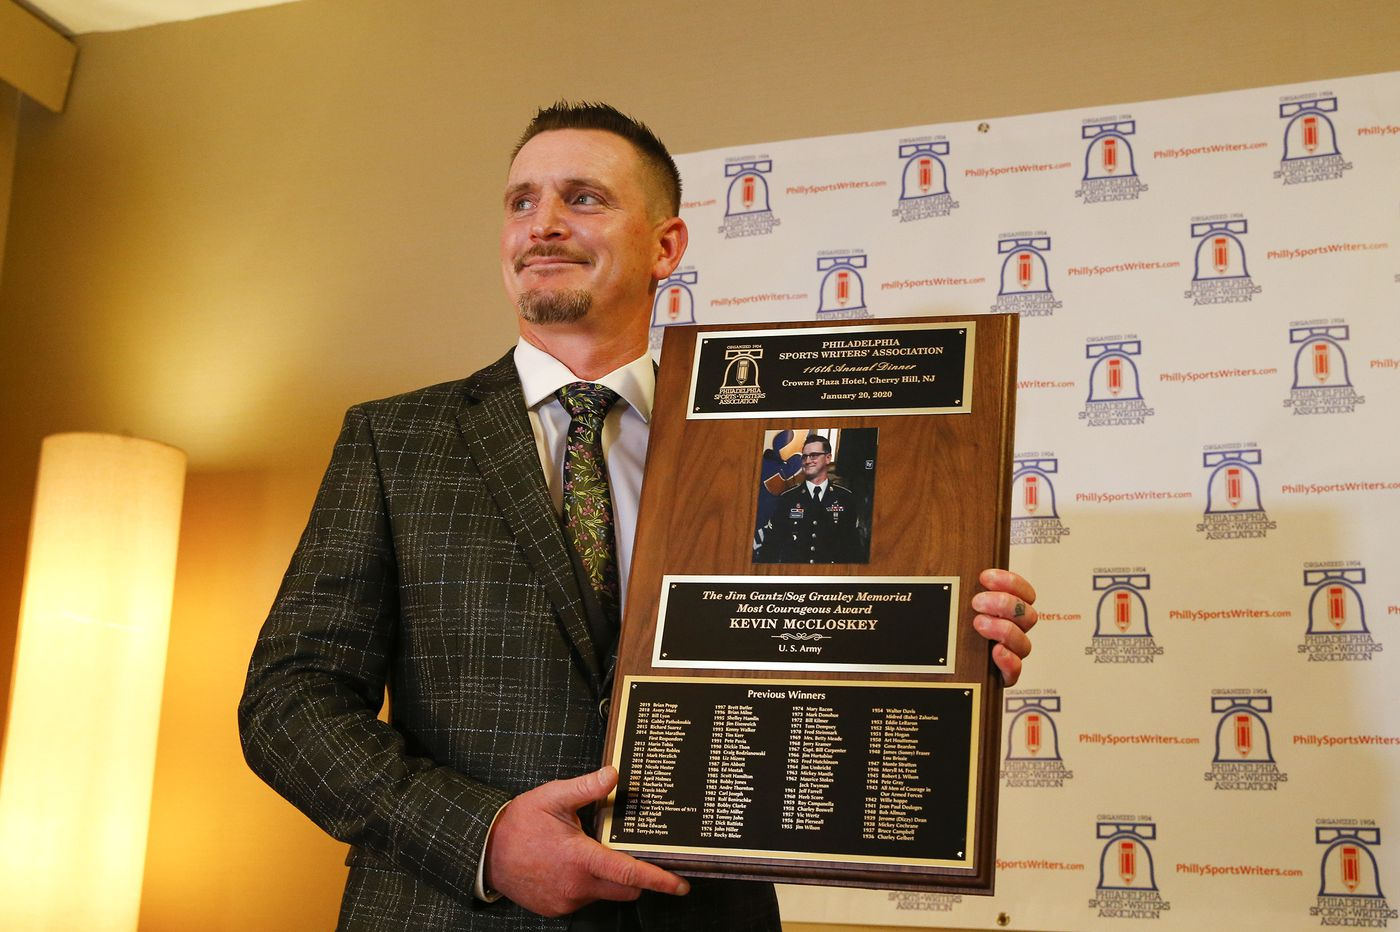 Veteran from Tacony who lost his legs in Afghanistan wins Philly sportswriters' award for courage